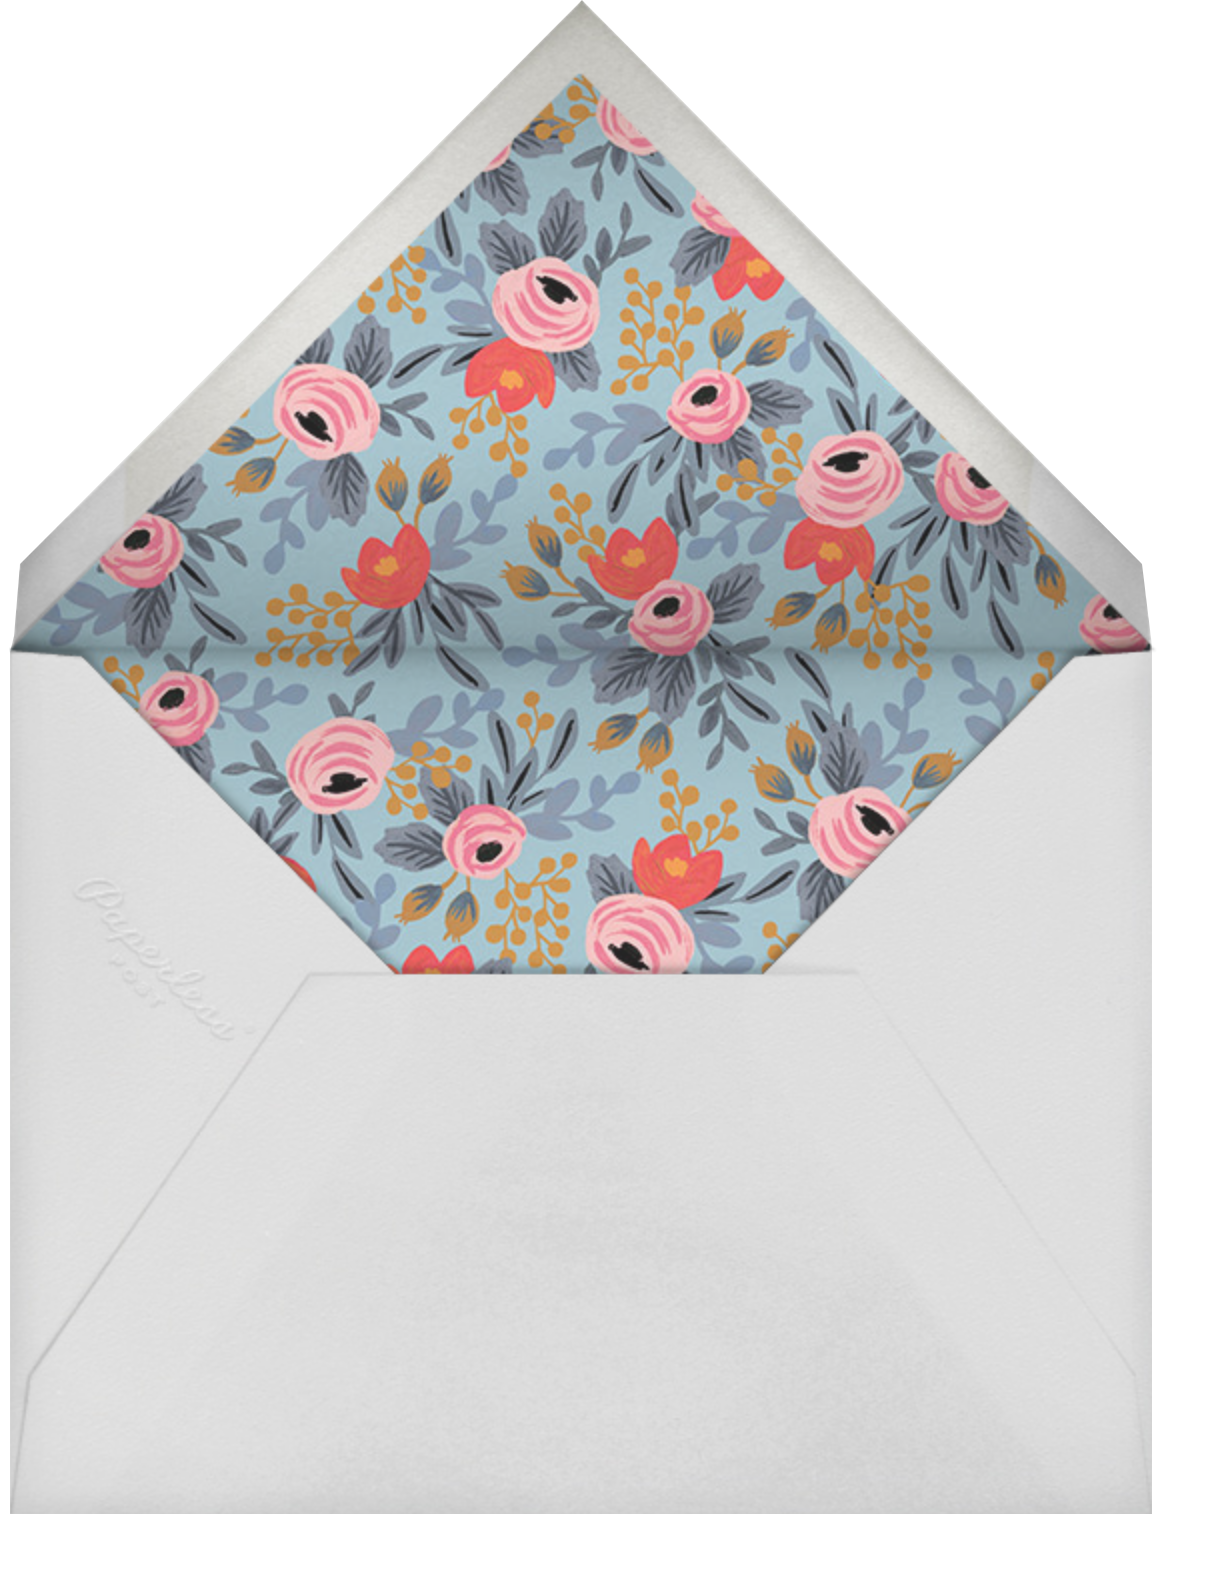 Year in Bloom - White - Rifle Paper Co. - Printable invitations - envelope back